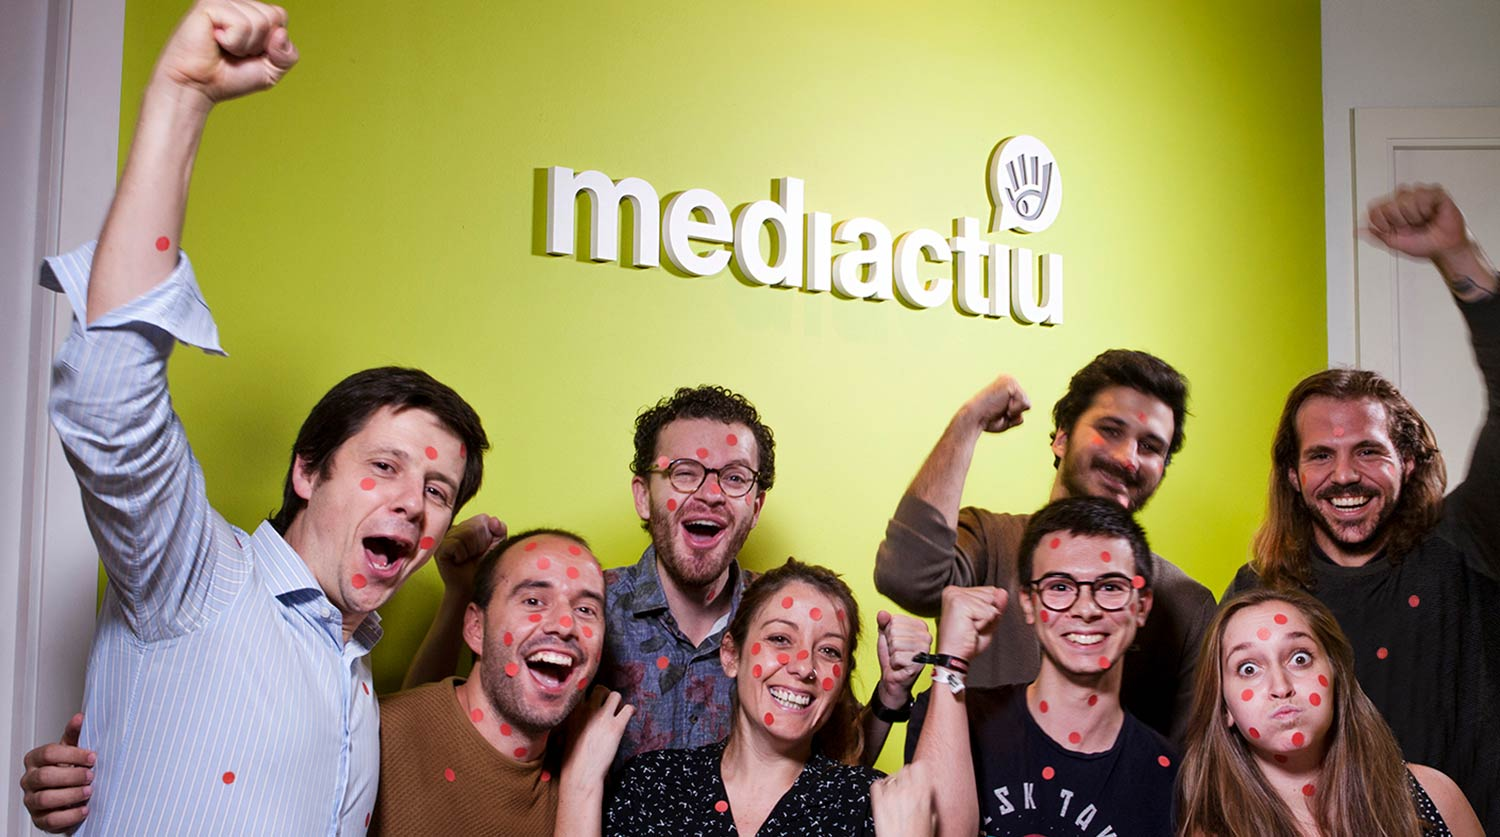 mediactiu red dot award barcelona - El Grand Prix de los Red Dot awards, el premio de los premios del diseño